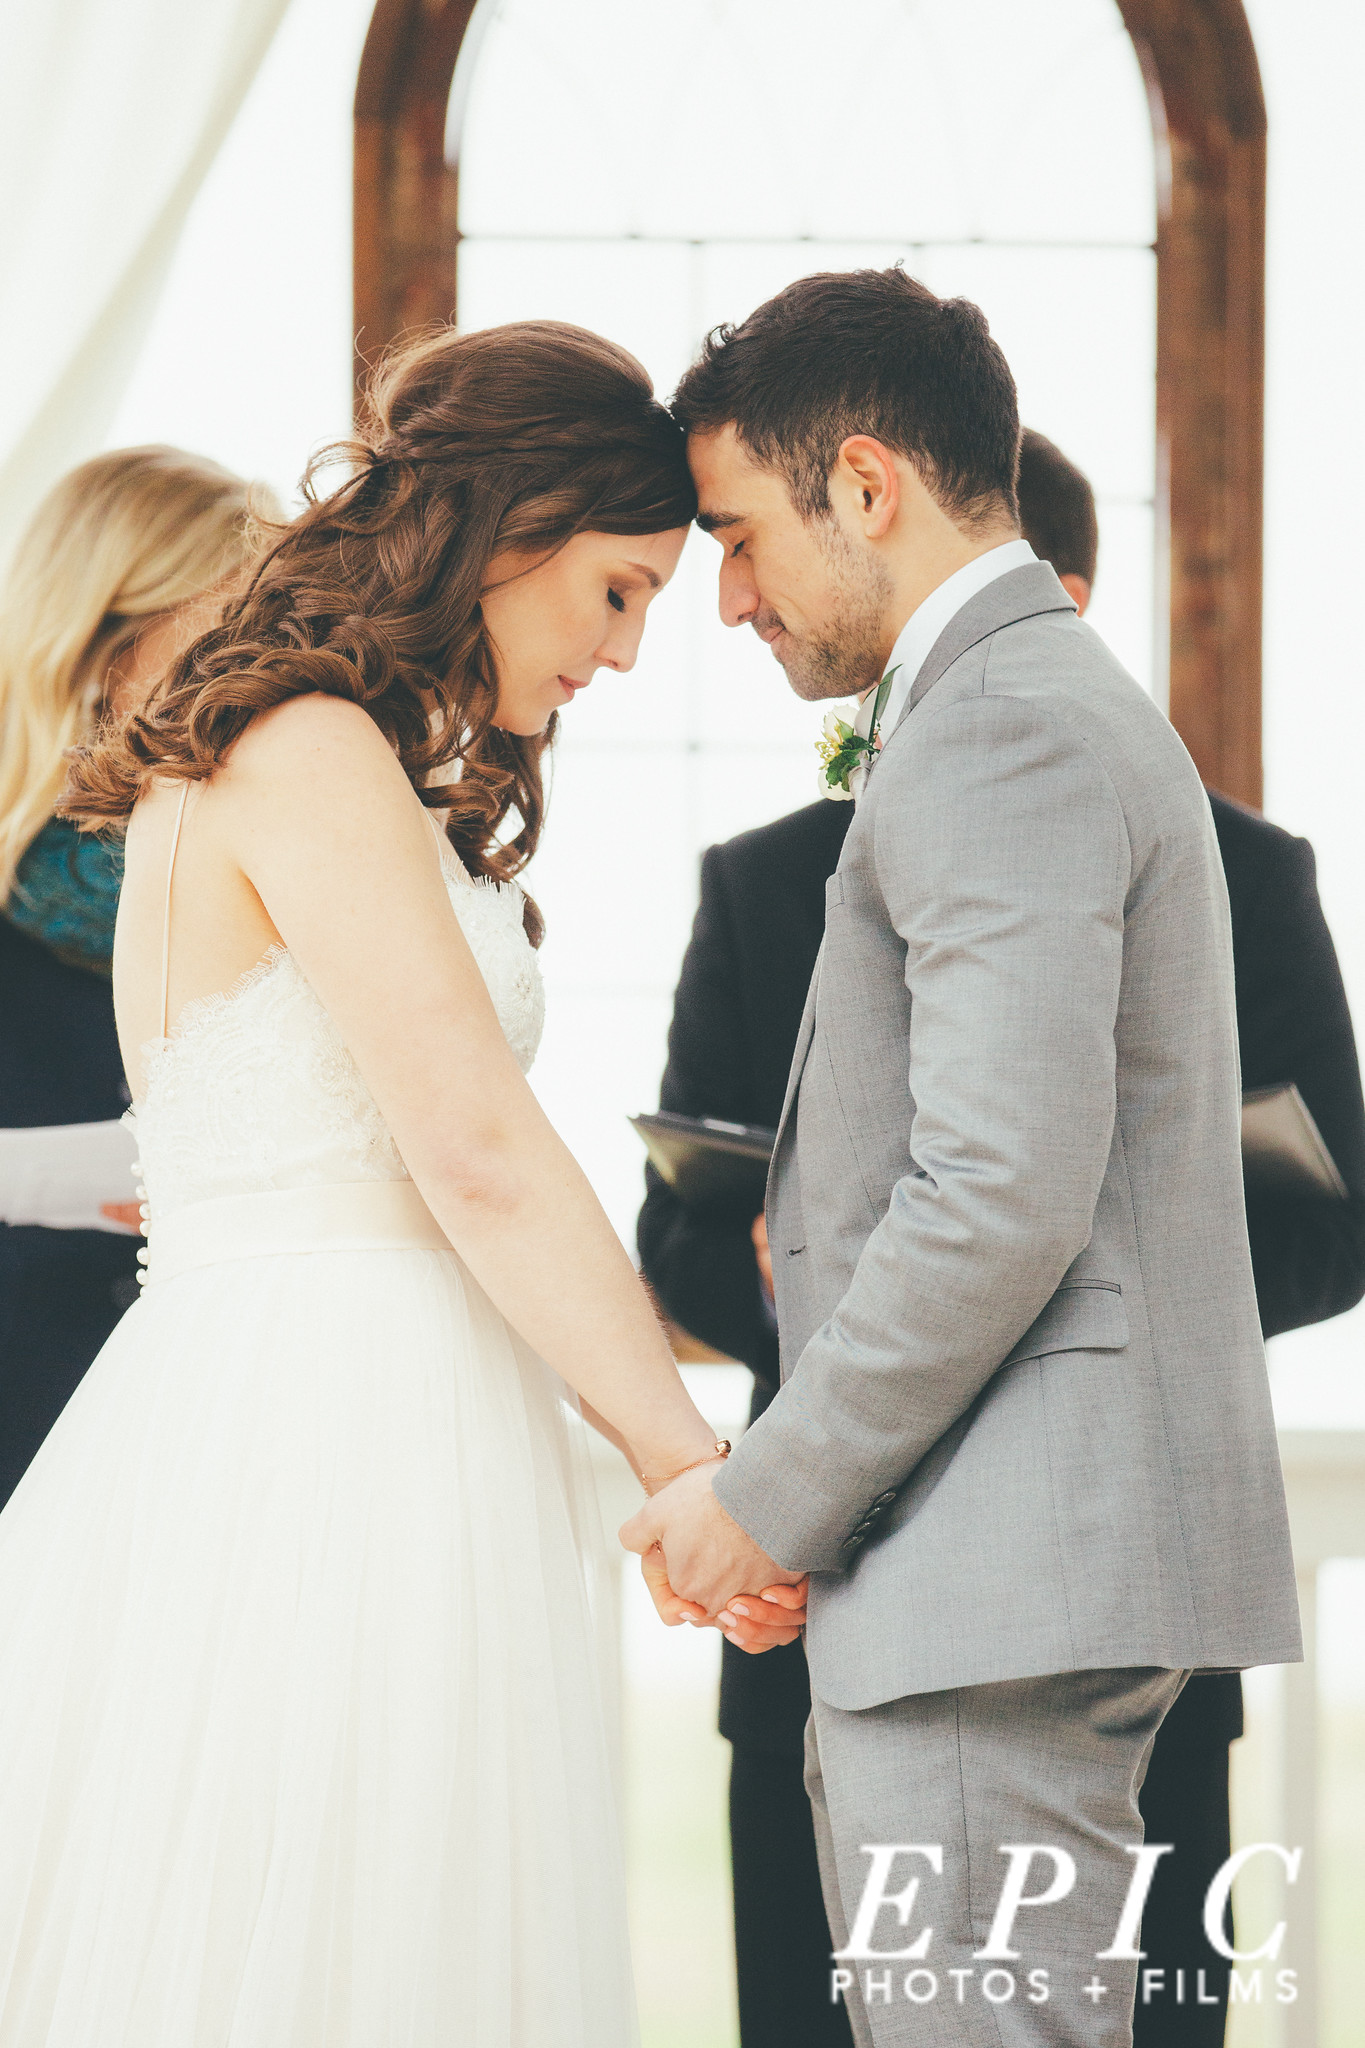 bride and groom stand holding hands with their foreheads touching and their eyes closed at the alter as they pray